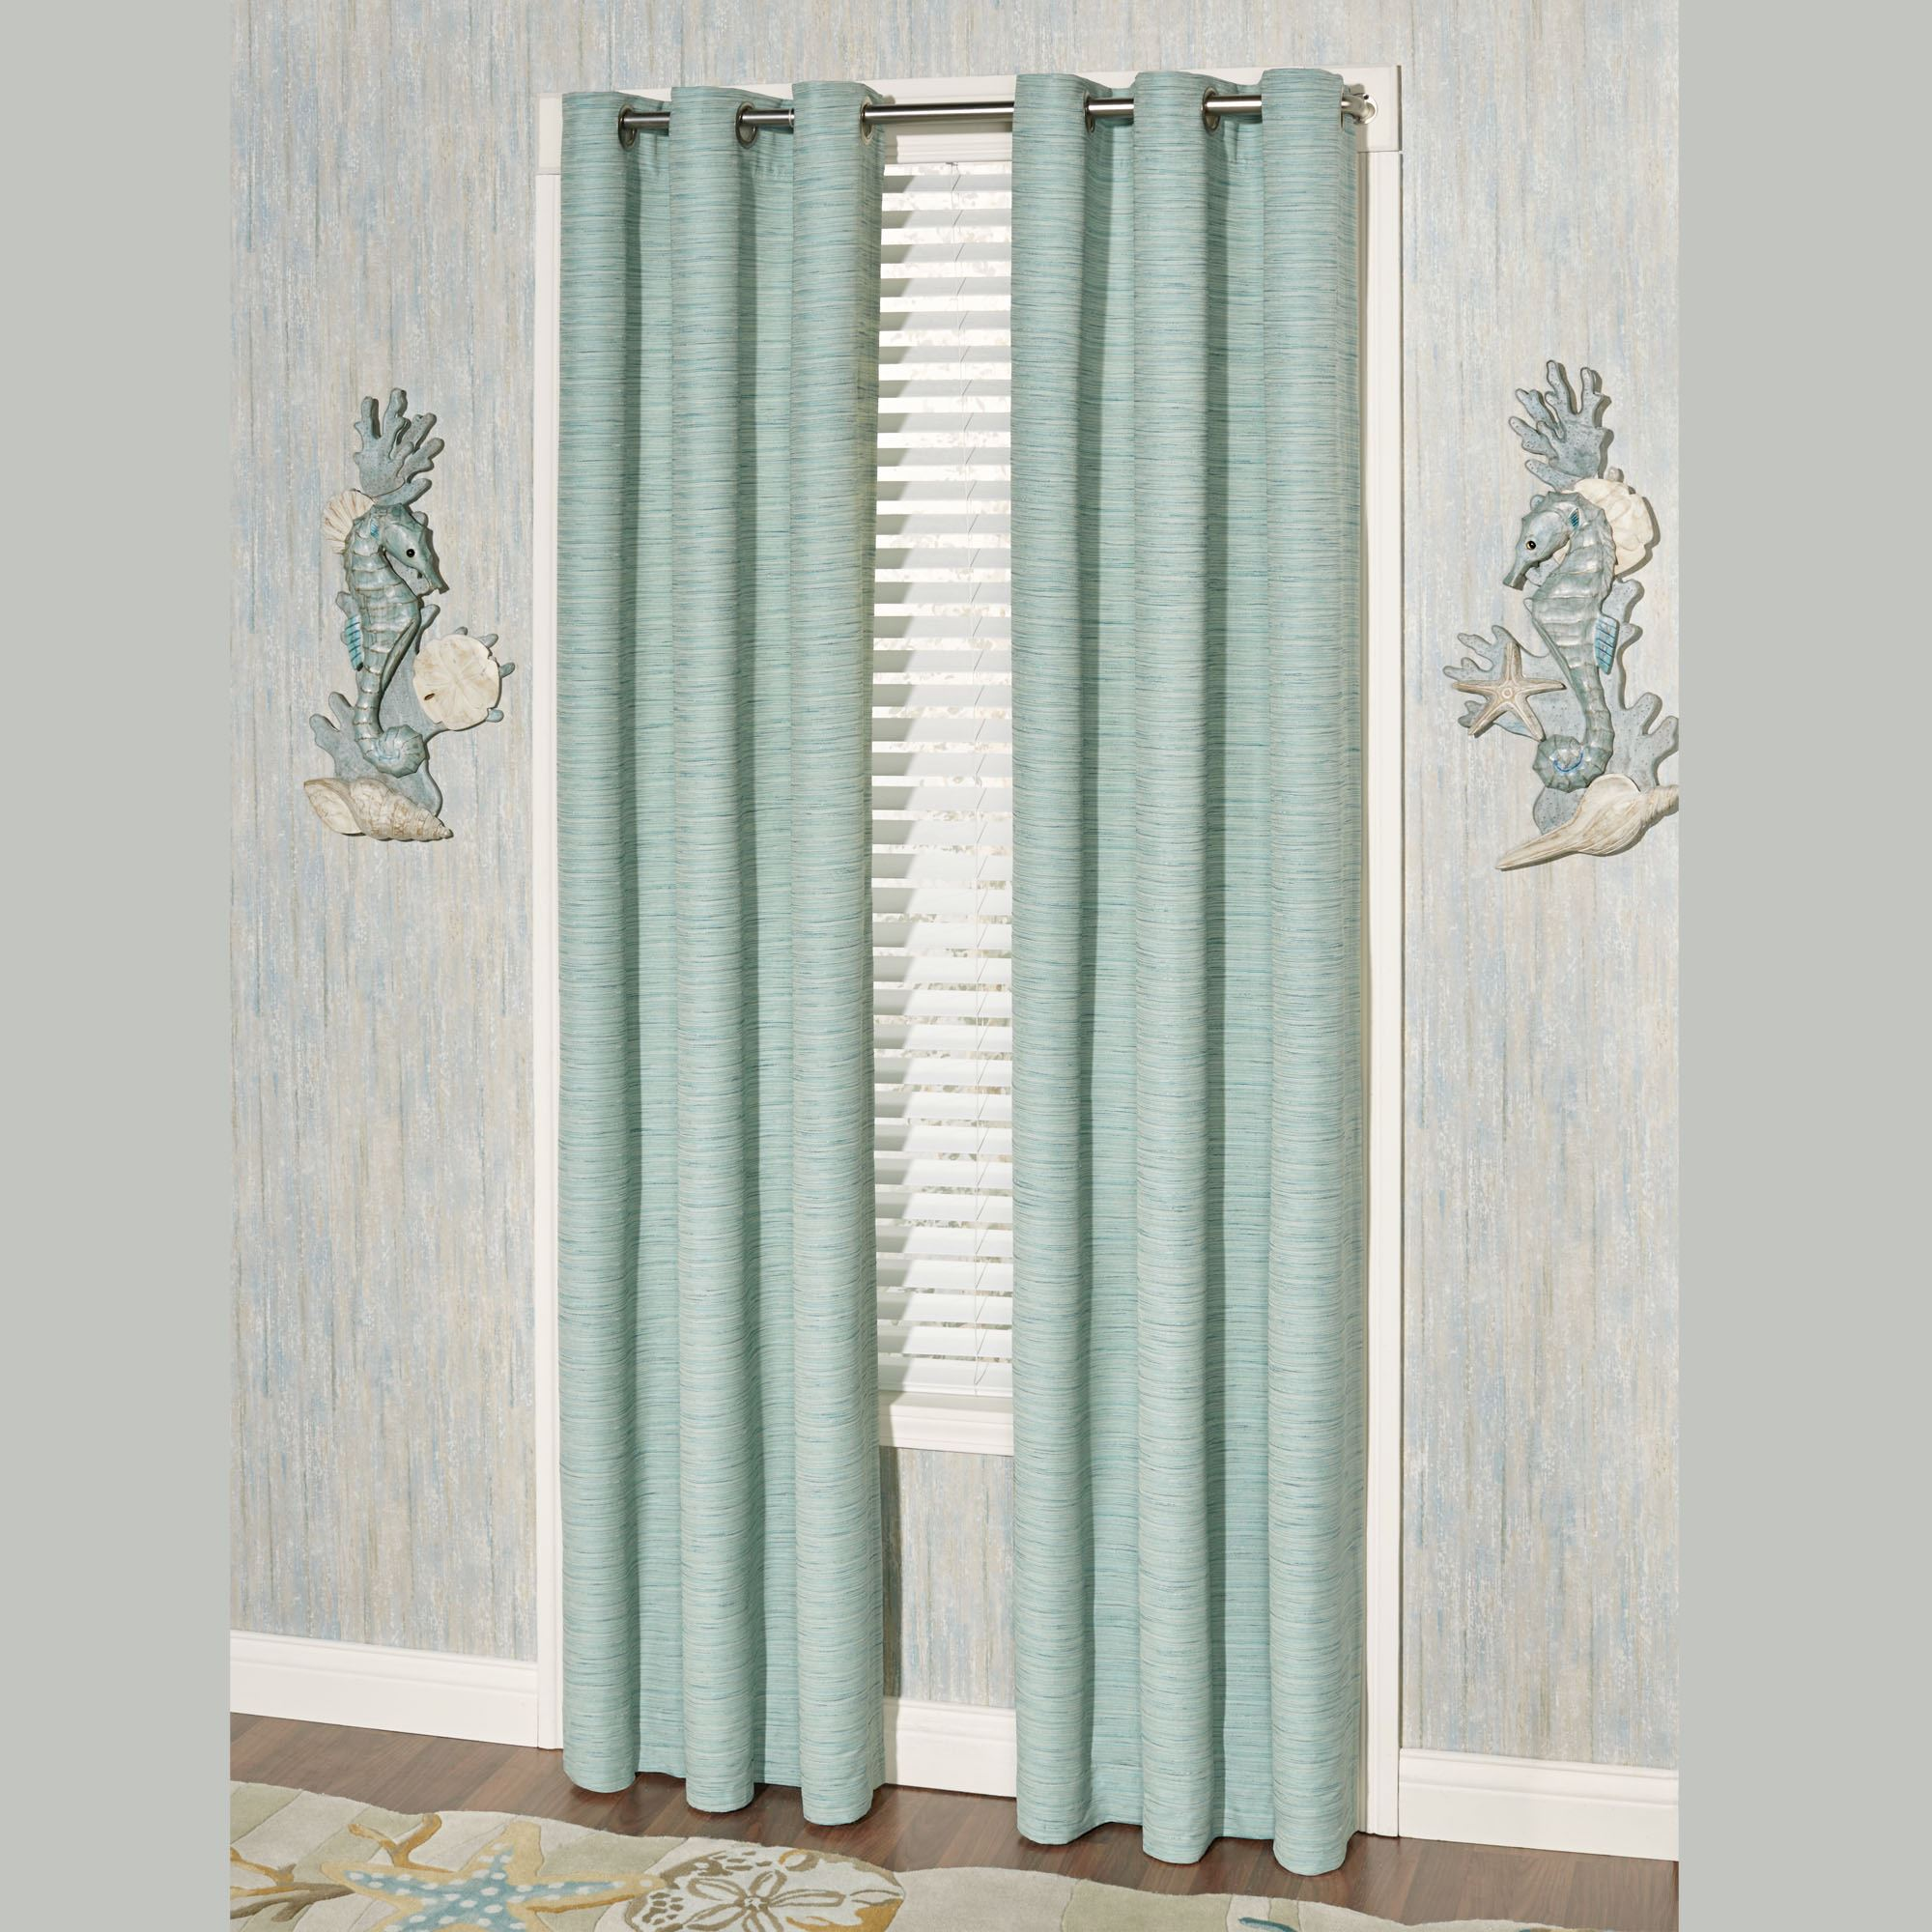 beach shower and bed ocean kids cool themed curtain curtains